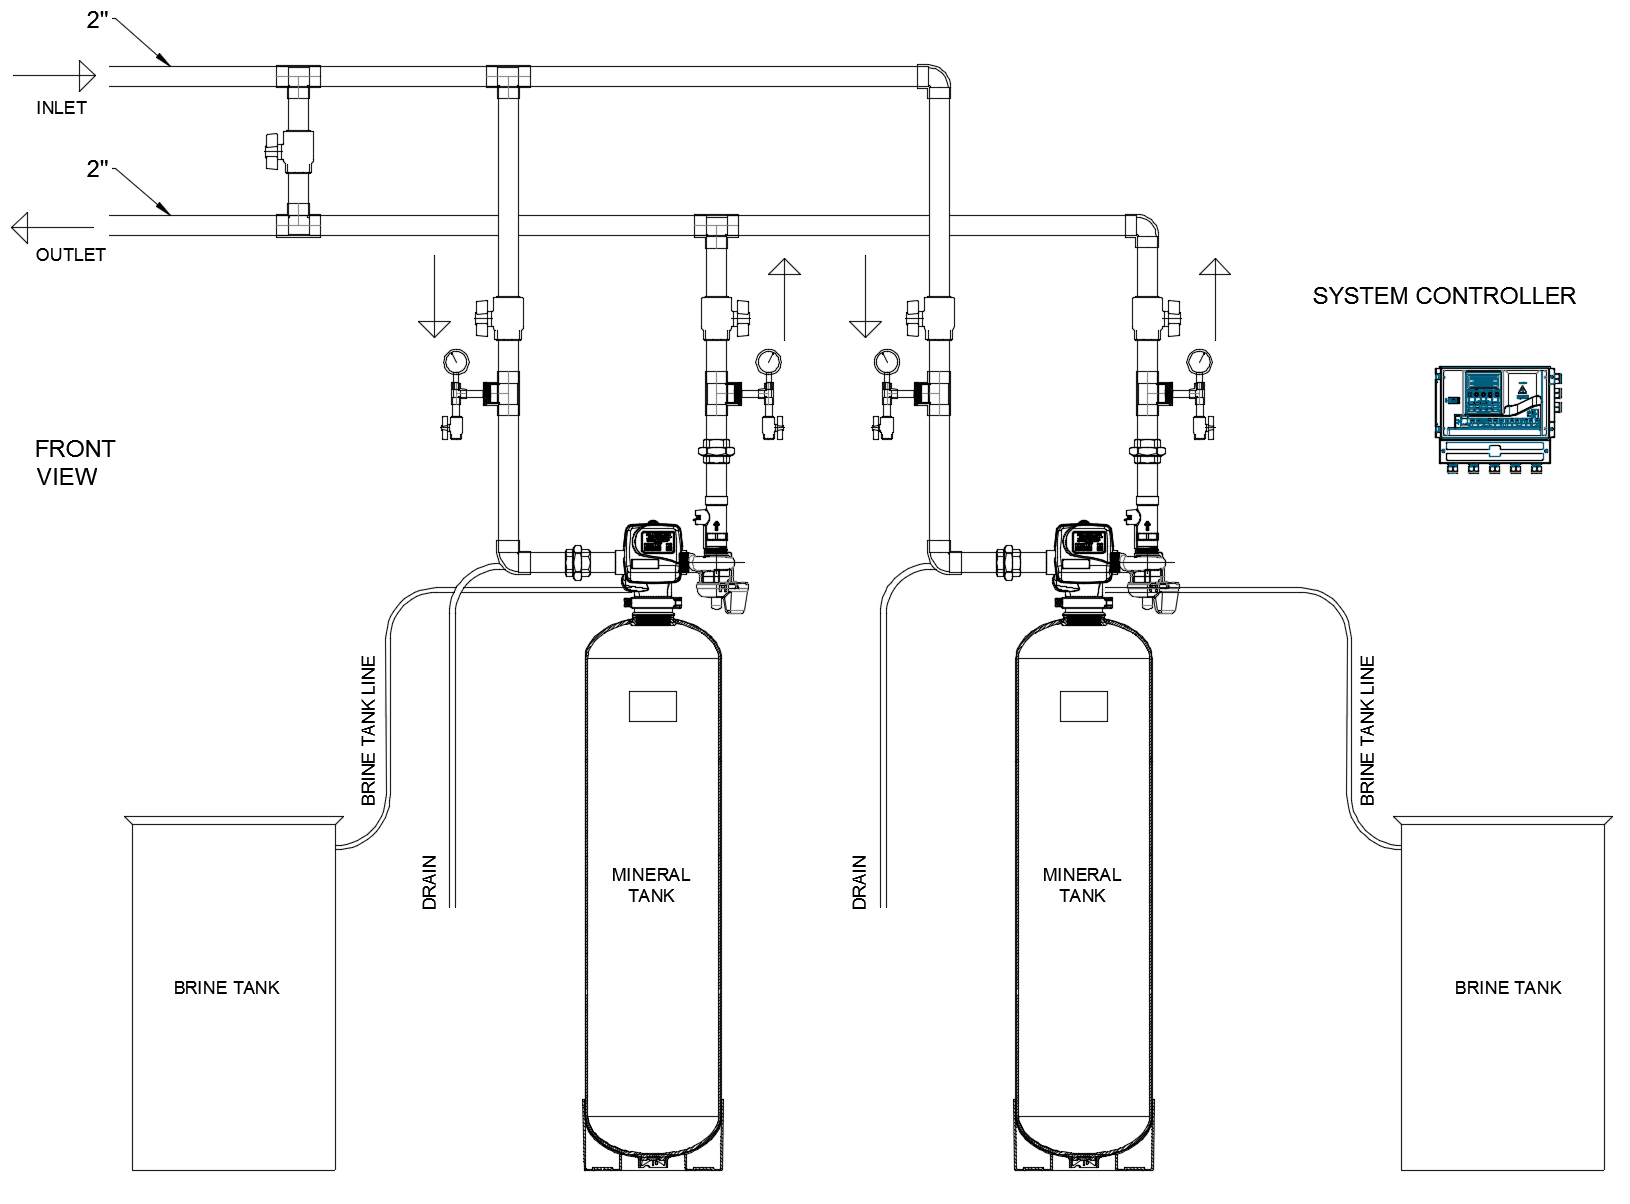 Piping Diagram For Water Softener Wiring Diagram Schemes